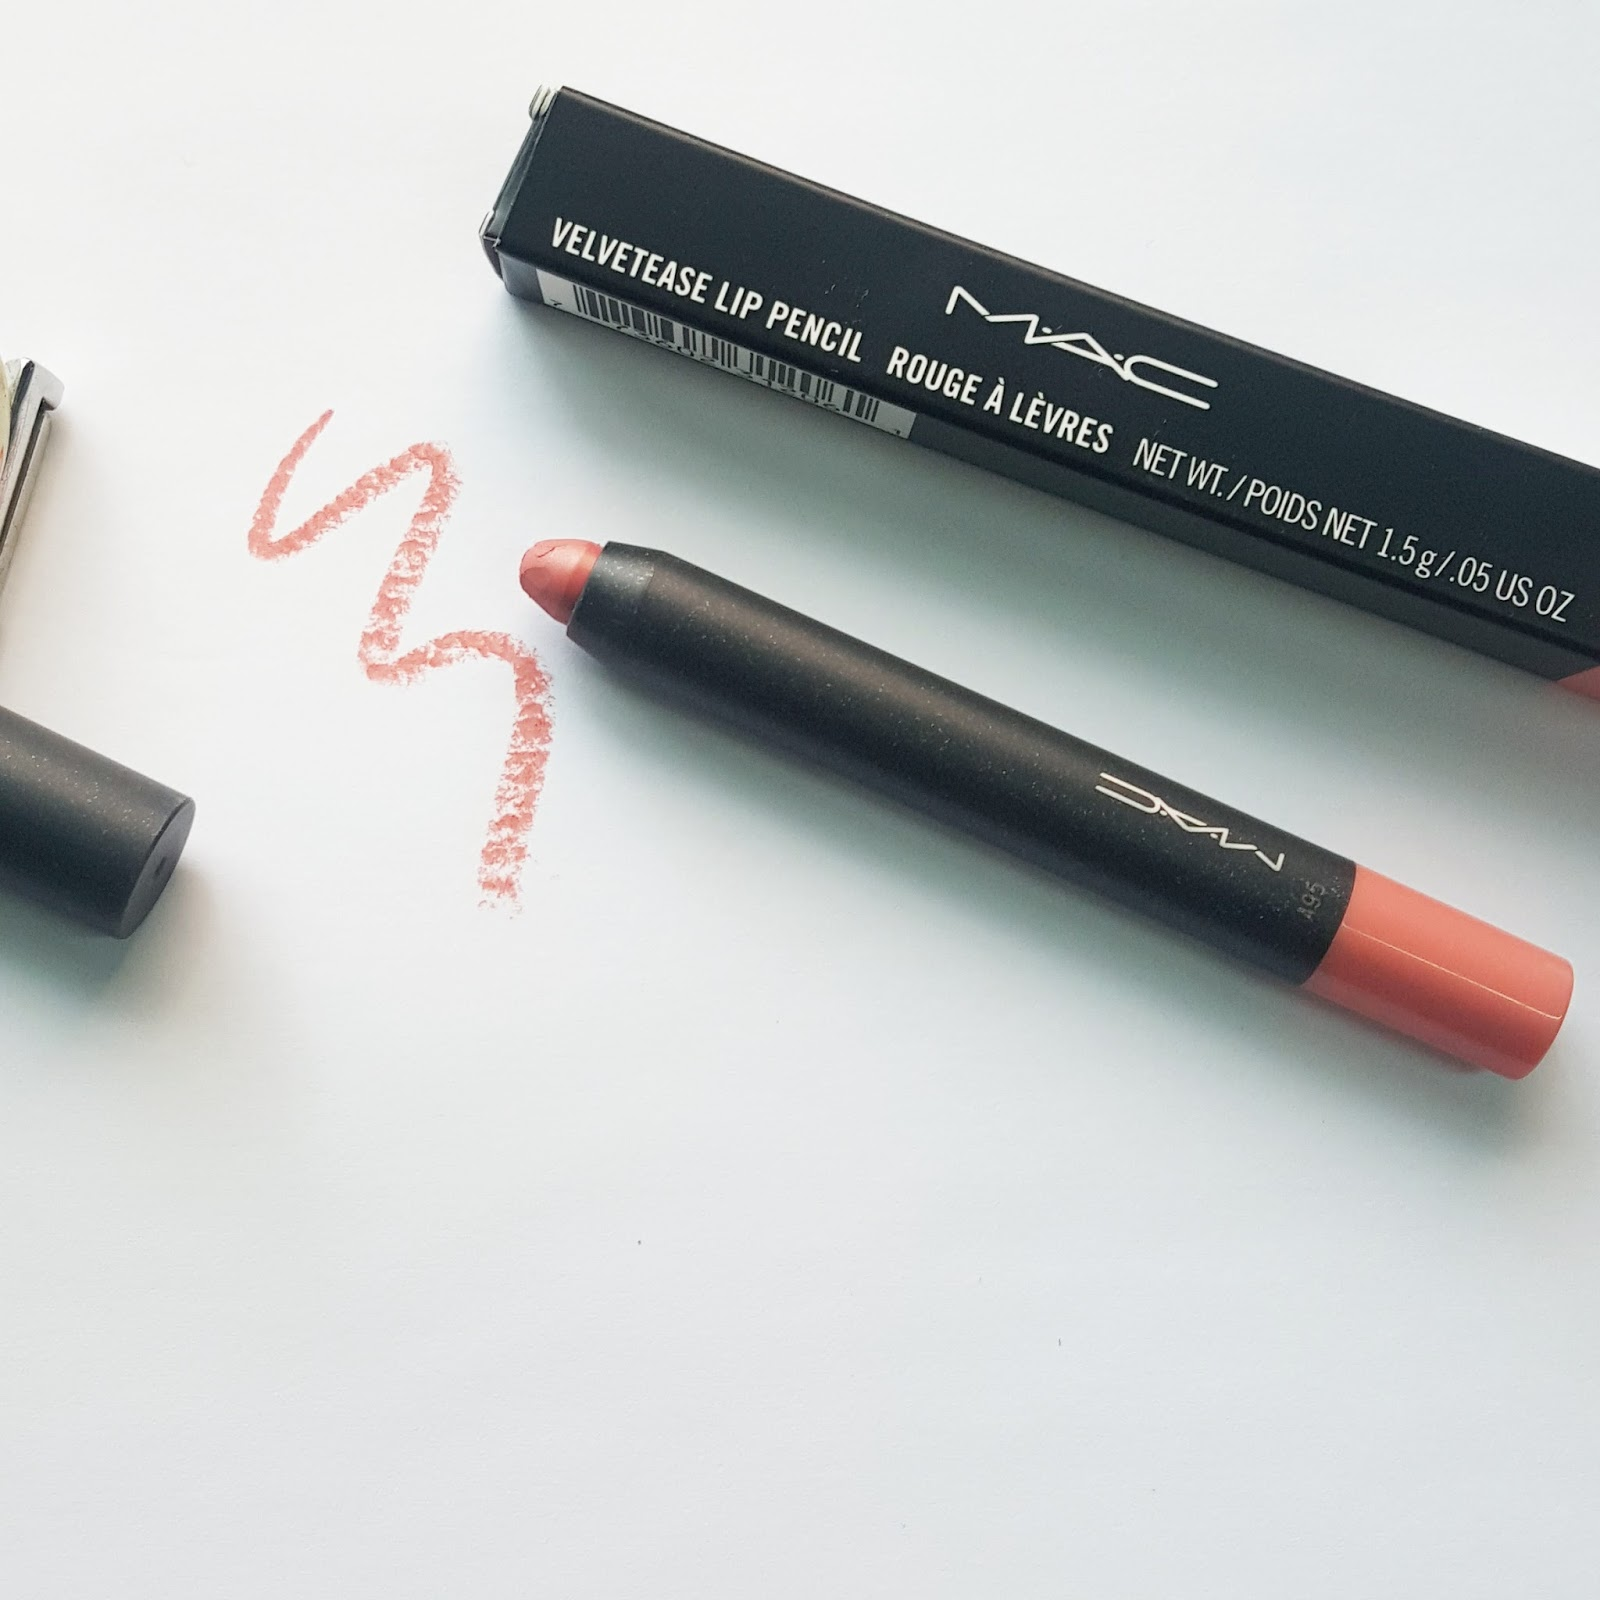 Conosciuto RIDZI MAKEUP: M.A.C VELVETEASE LIP PENCIL IN FROLIC REVIEW SWATCH MO72